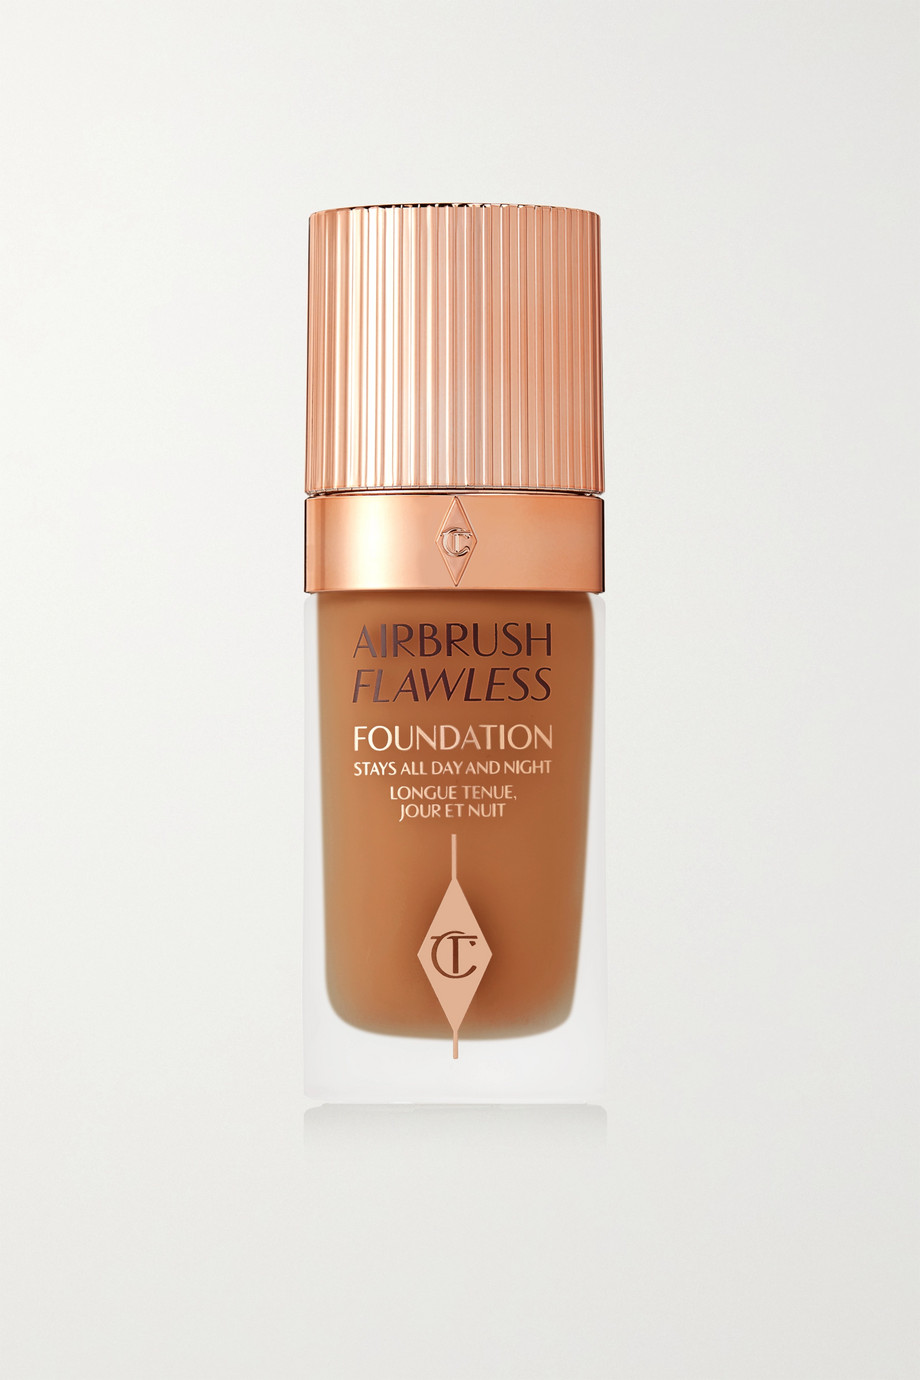 Charlotte Tilbury Airbrush Flawless Foundation - 12 Cool, 30ml